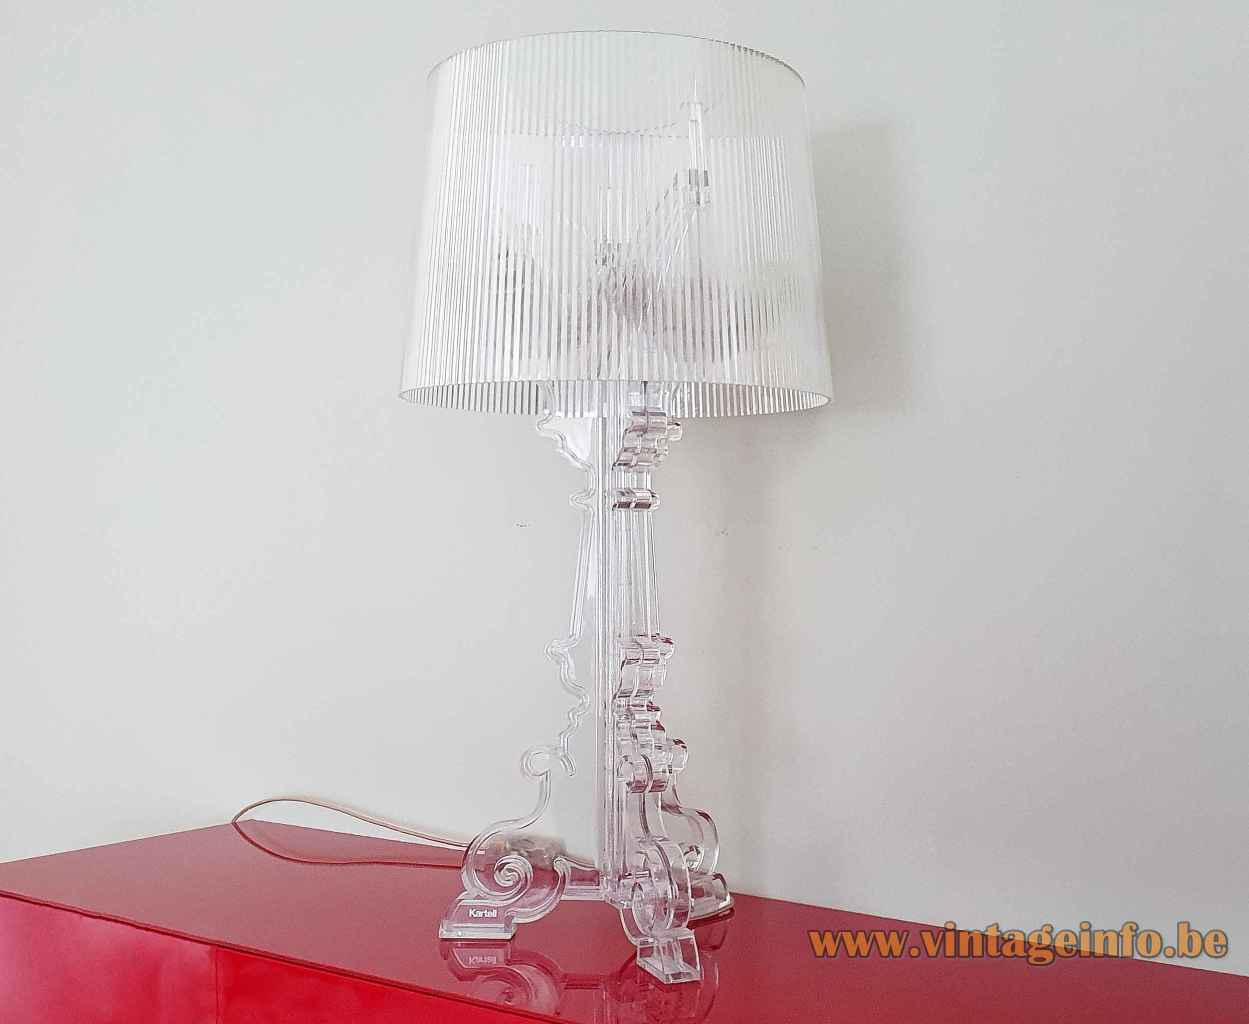 Kartell Bourgie table lamp clear plastic base ribbed conical lampshade 2004 design: Ferruccio Laviani Italy